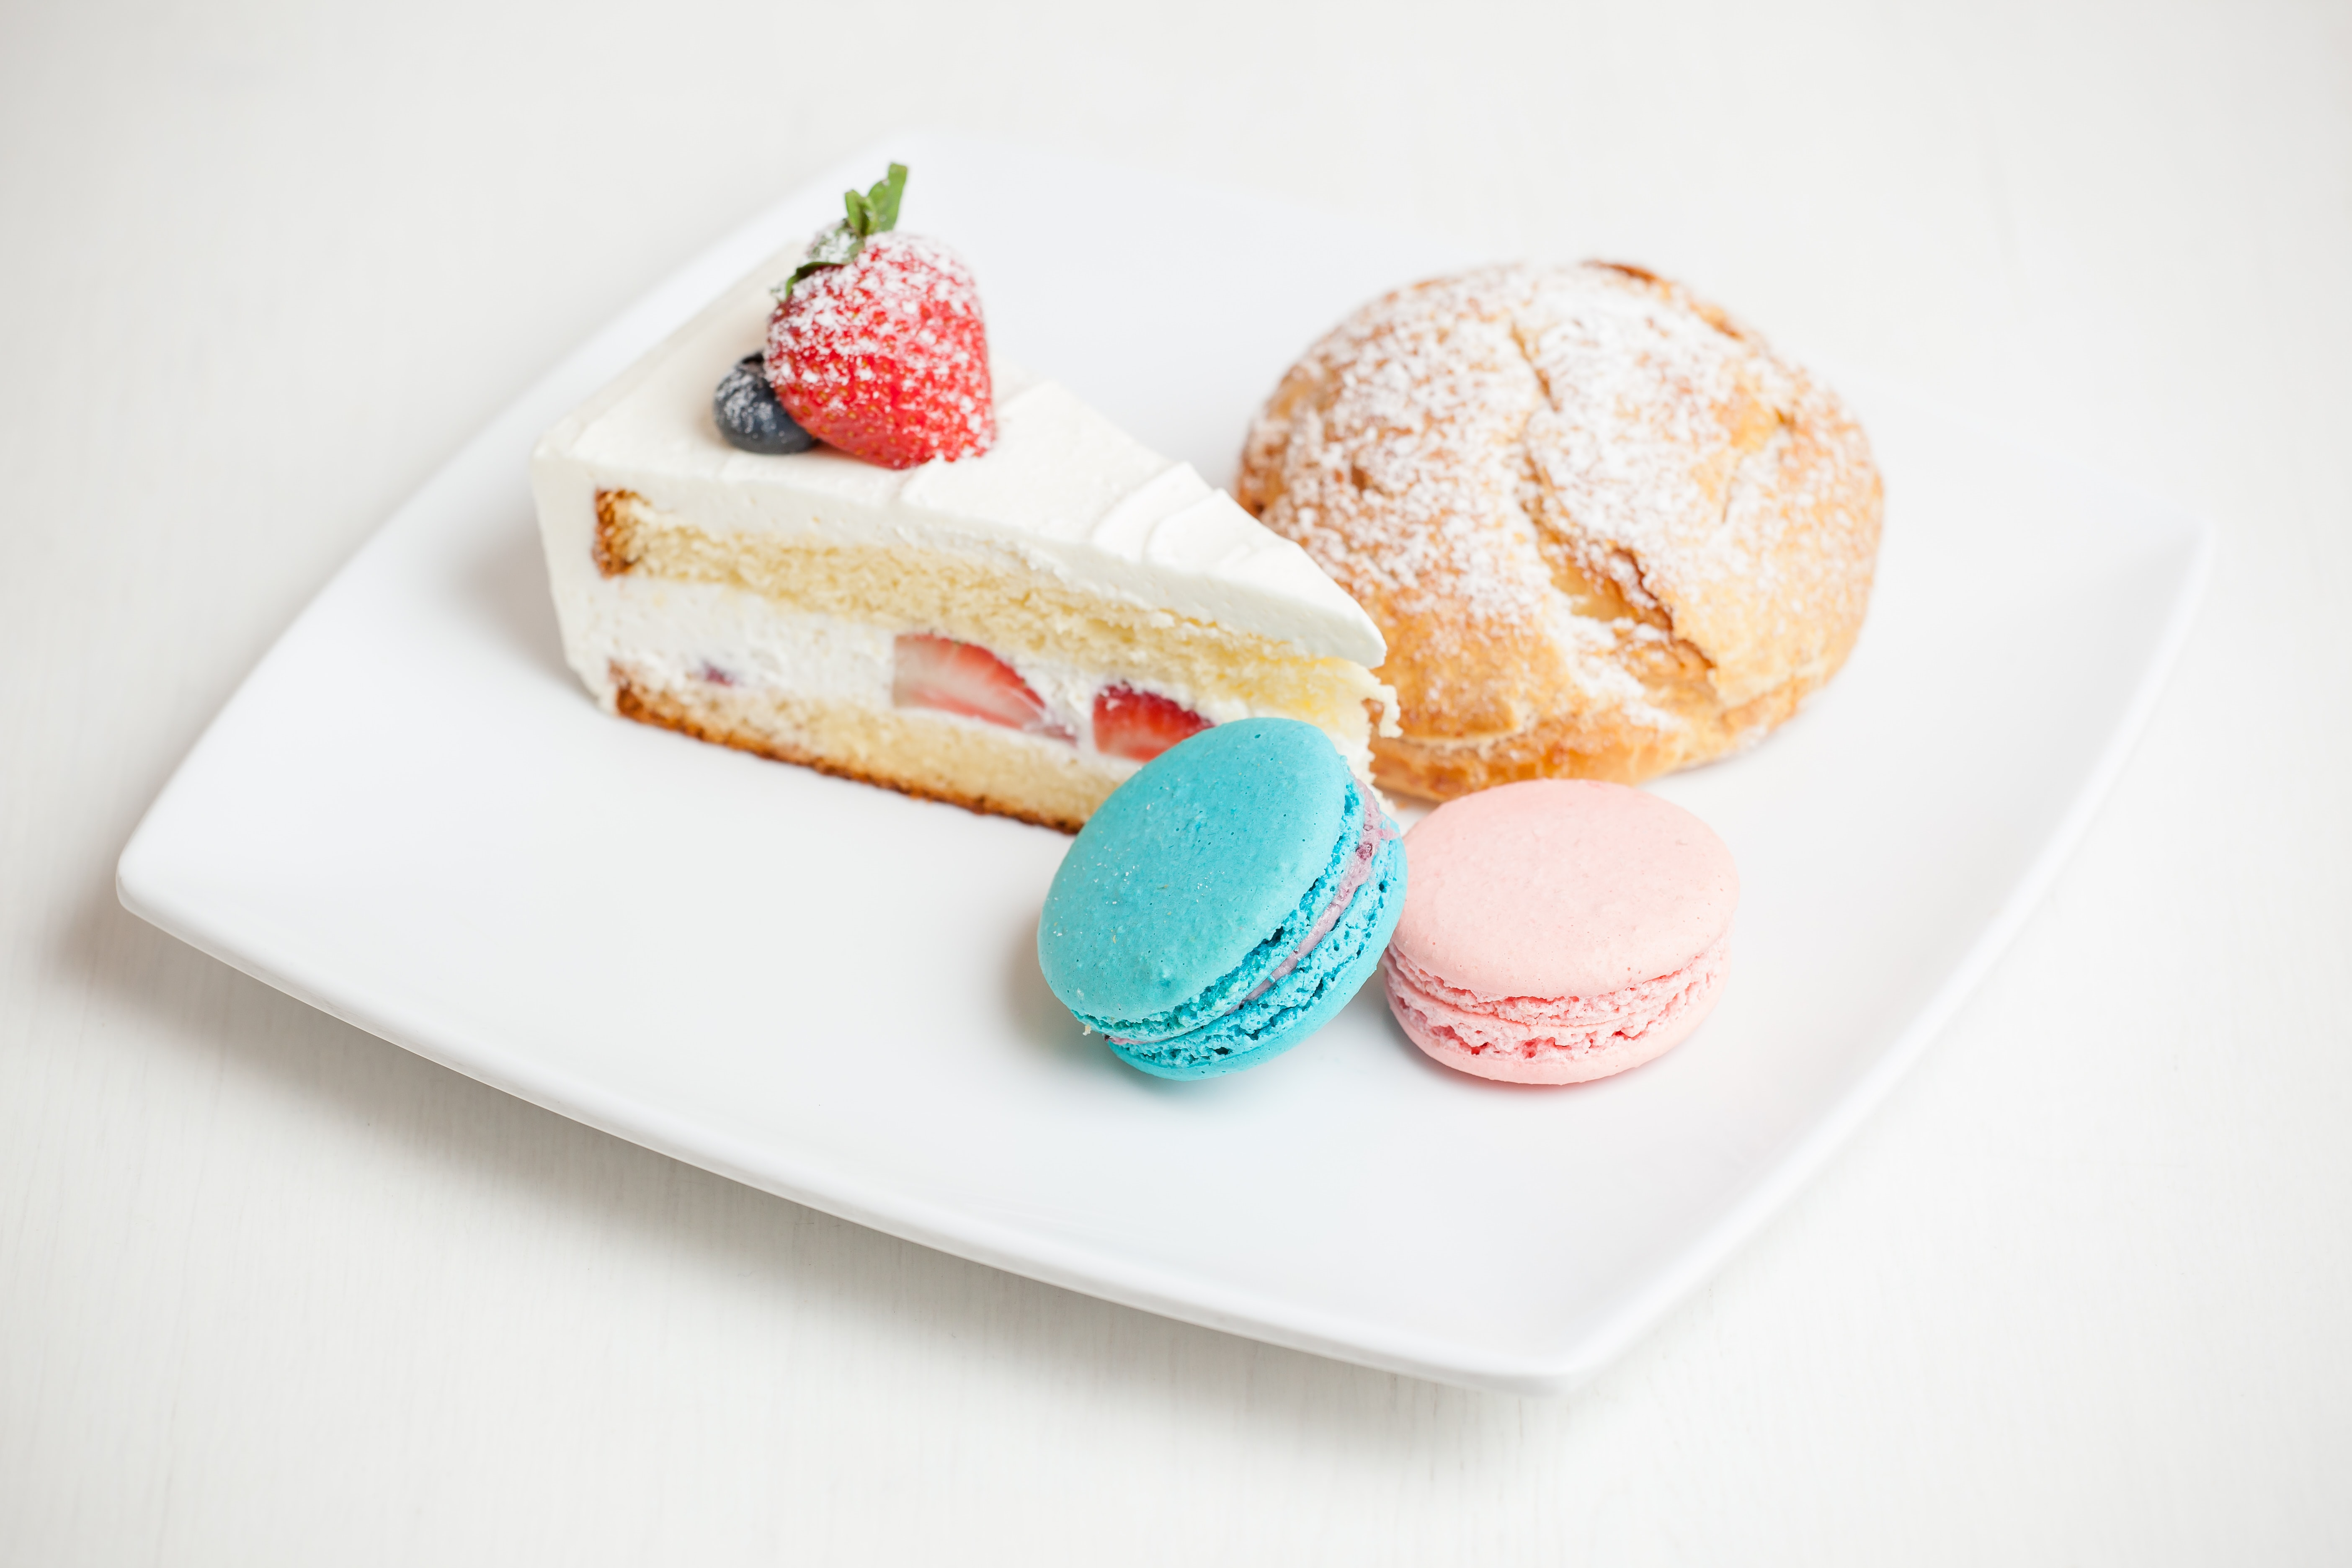 assorted pastries on white ceramic plate